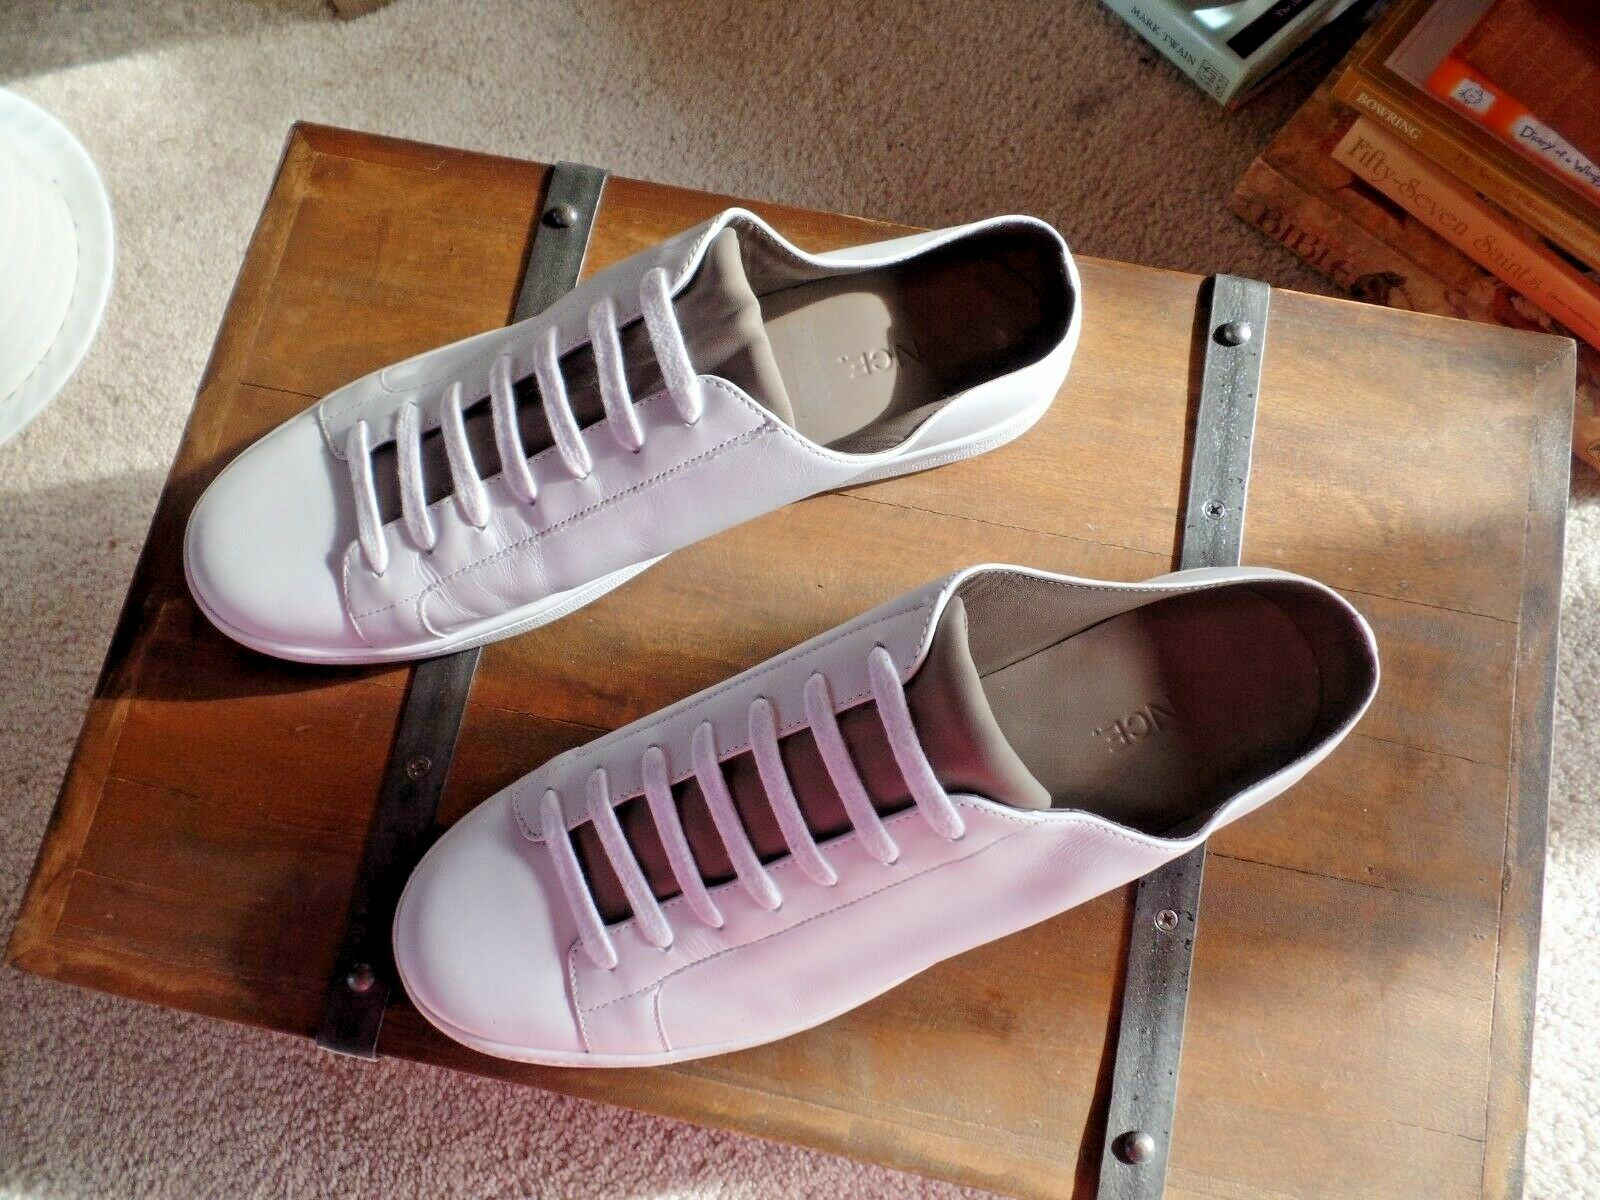 New Vince Varley Leather White Slip on Sneakers Sneakers Sneakers Size 9 US, 39 EUR  250 9a1446